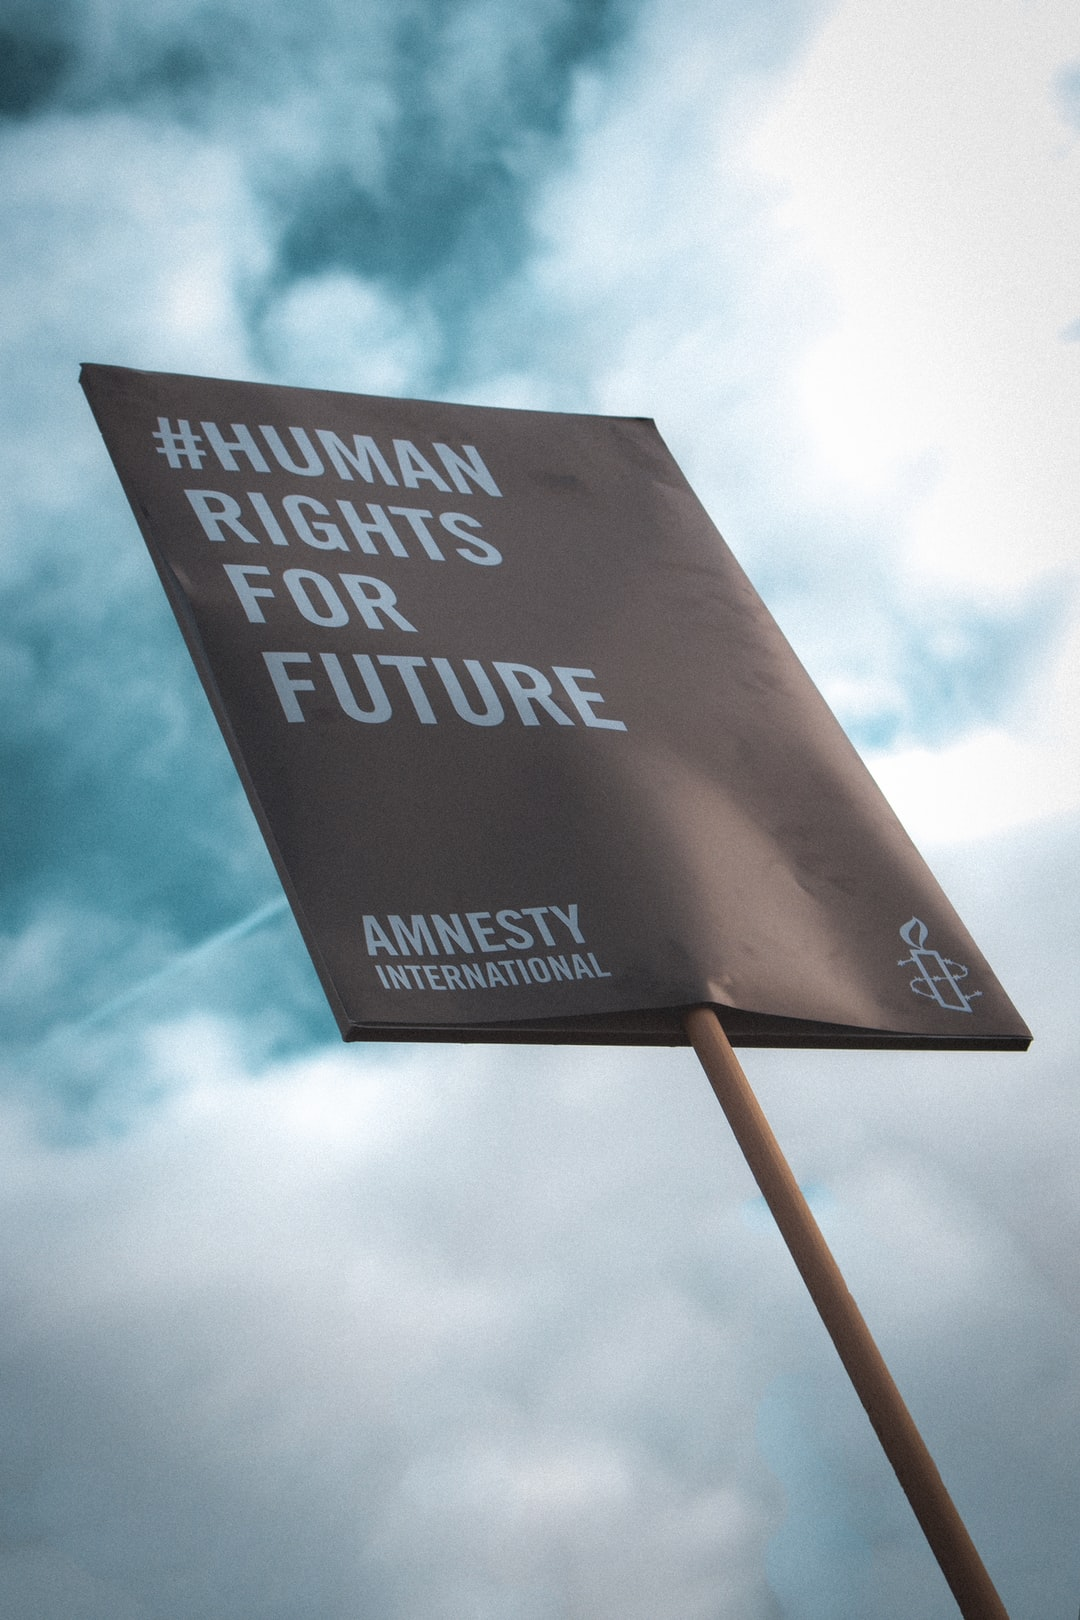 Human rights for future poster by Amnesty International at Fridays for Future